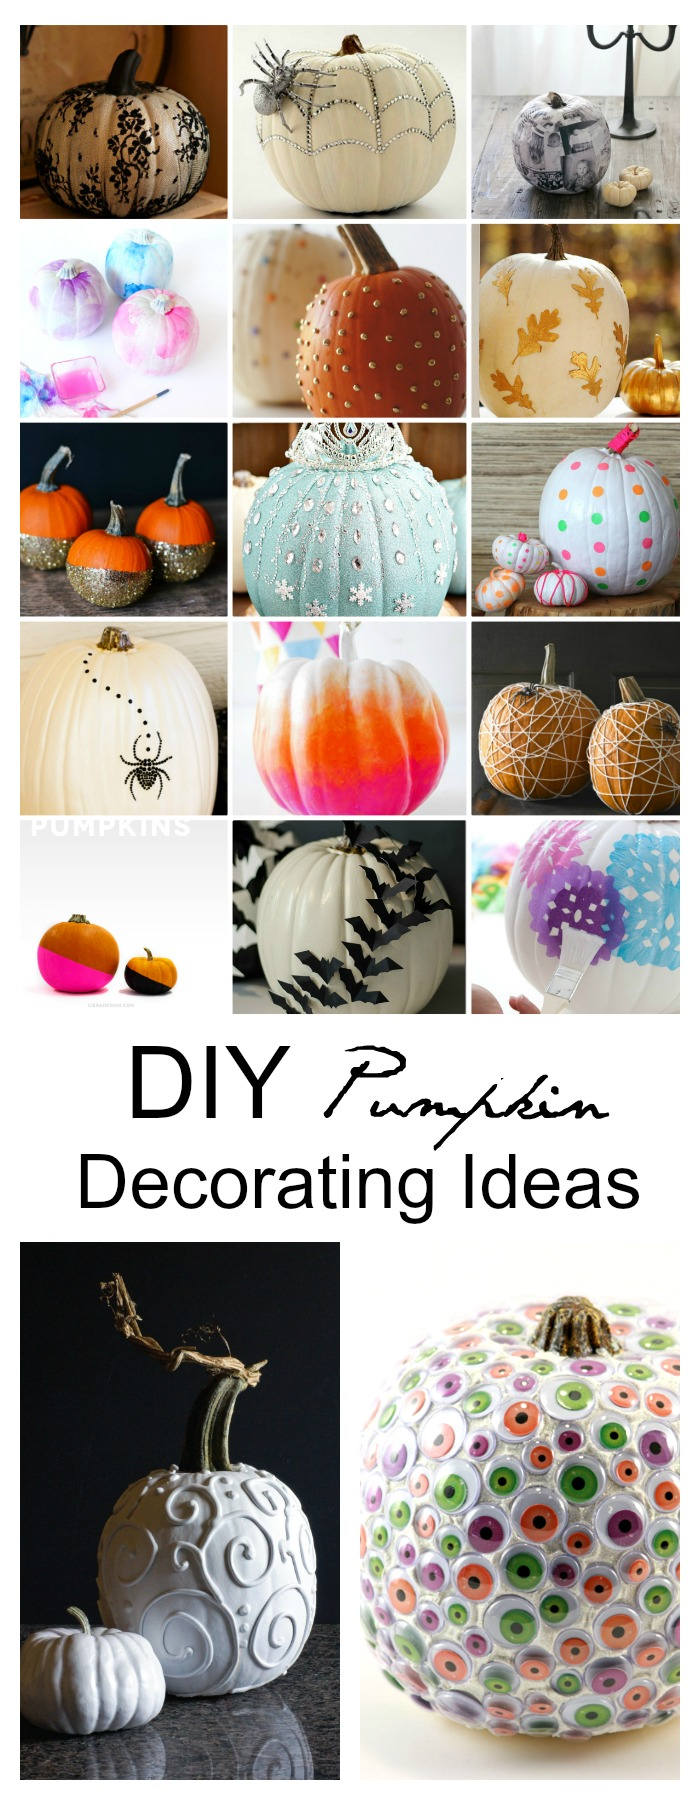 DIY-Pumpkin-Decorating-Ideas-Pin